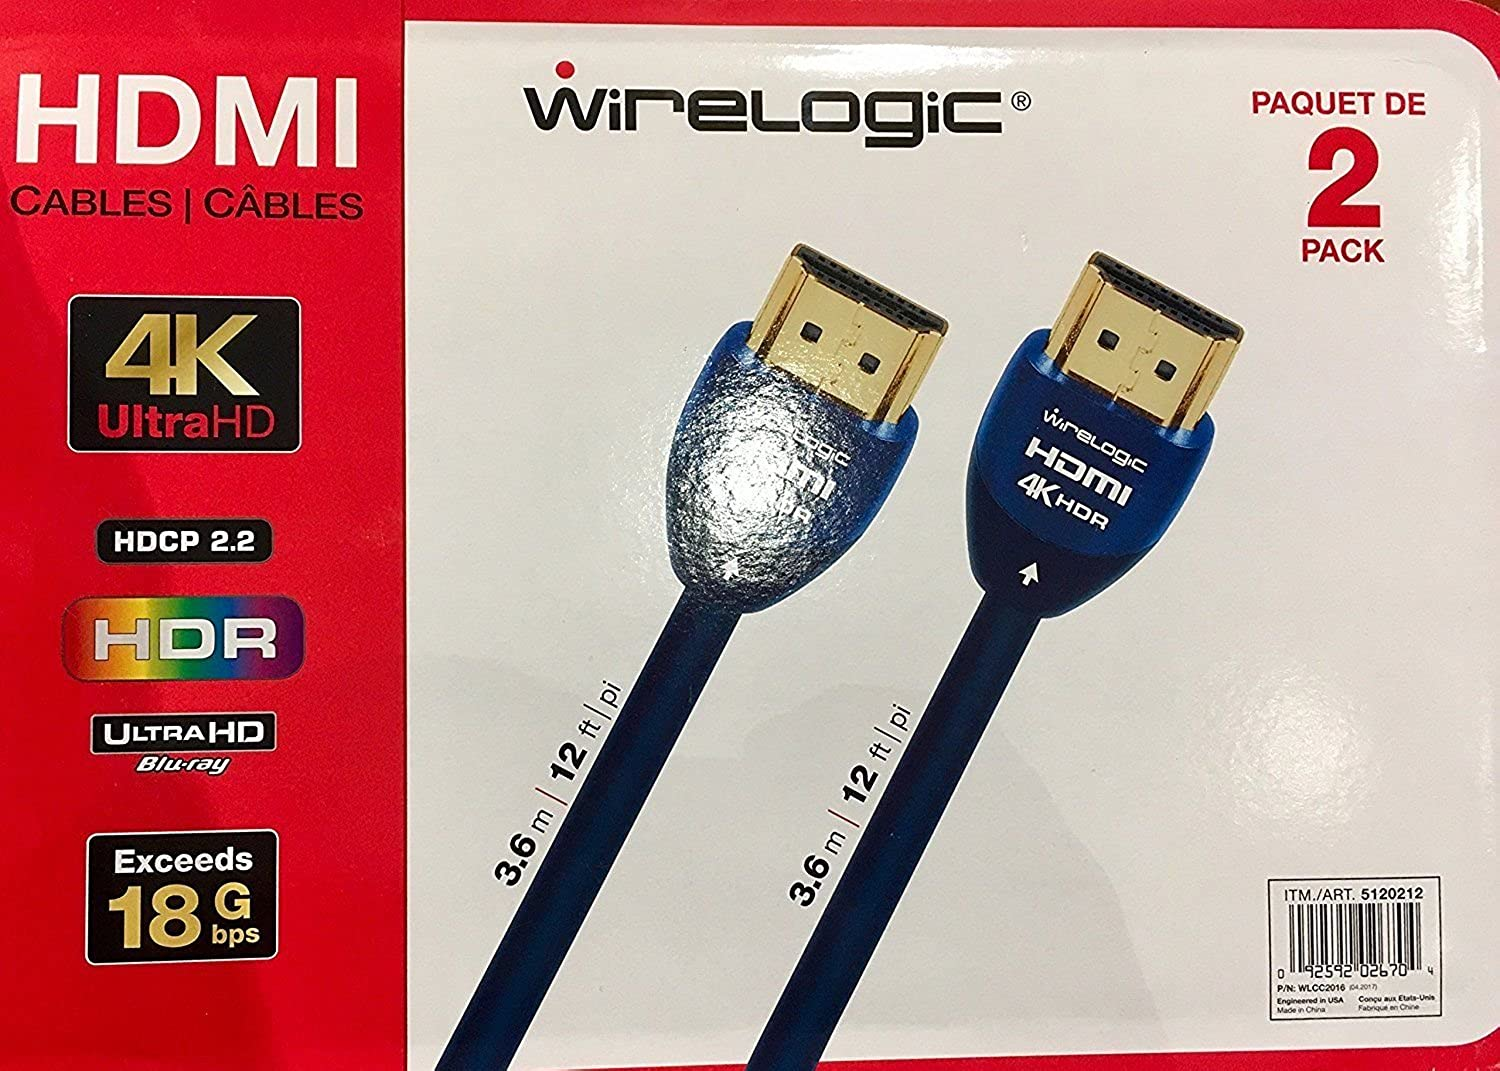 Amazon.com: WireLogic 12 Feet Sapphire HDMI Cable 2-pack: Clothing